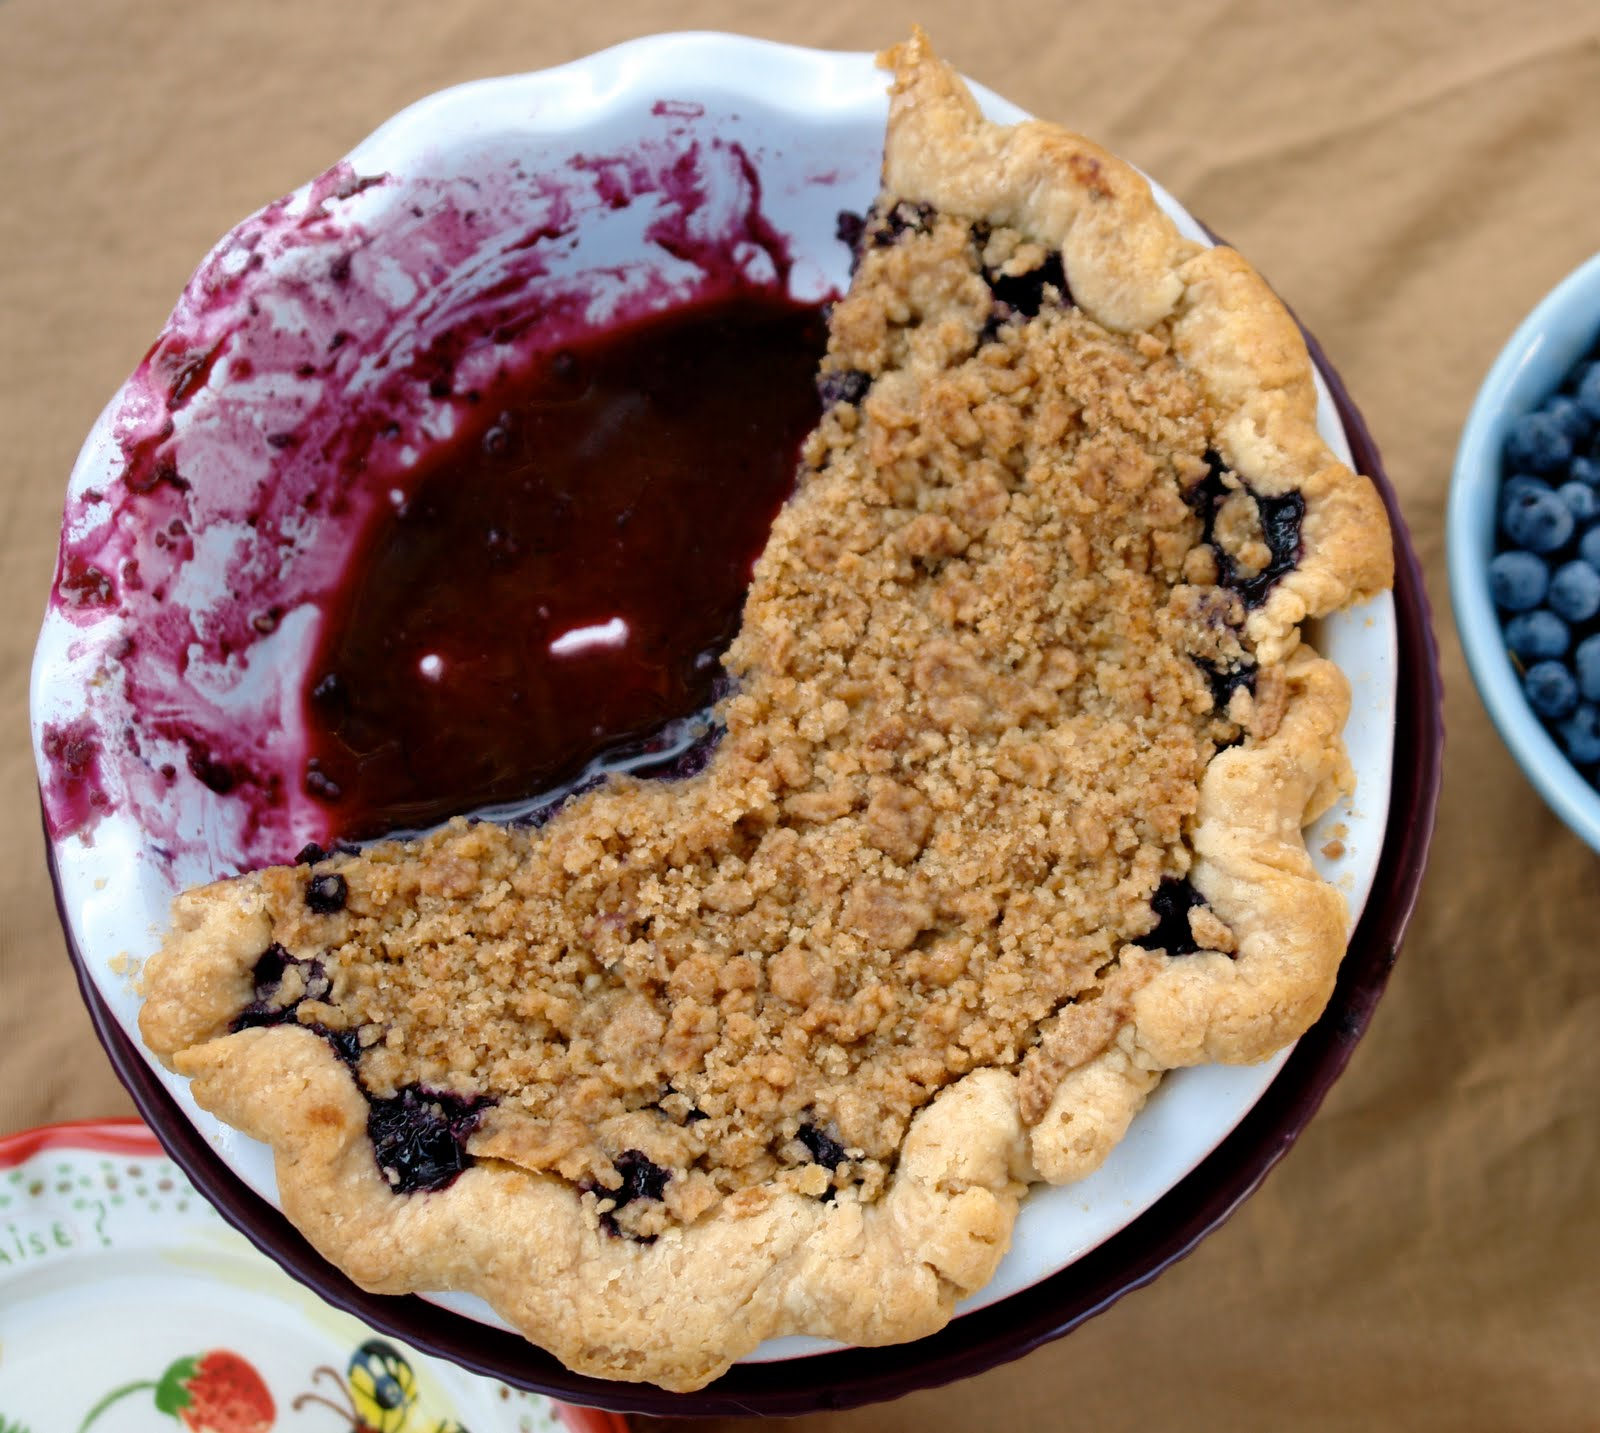 Voila! Blueberry crumble pie!